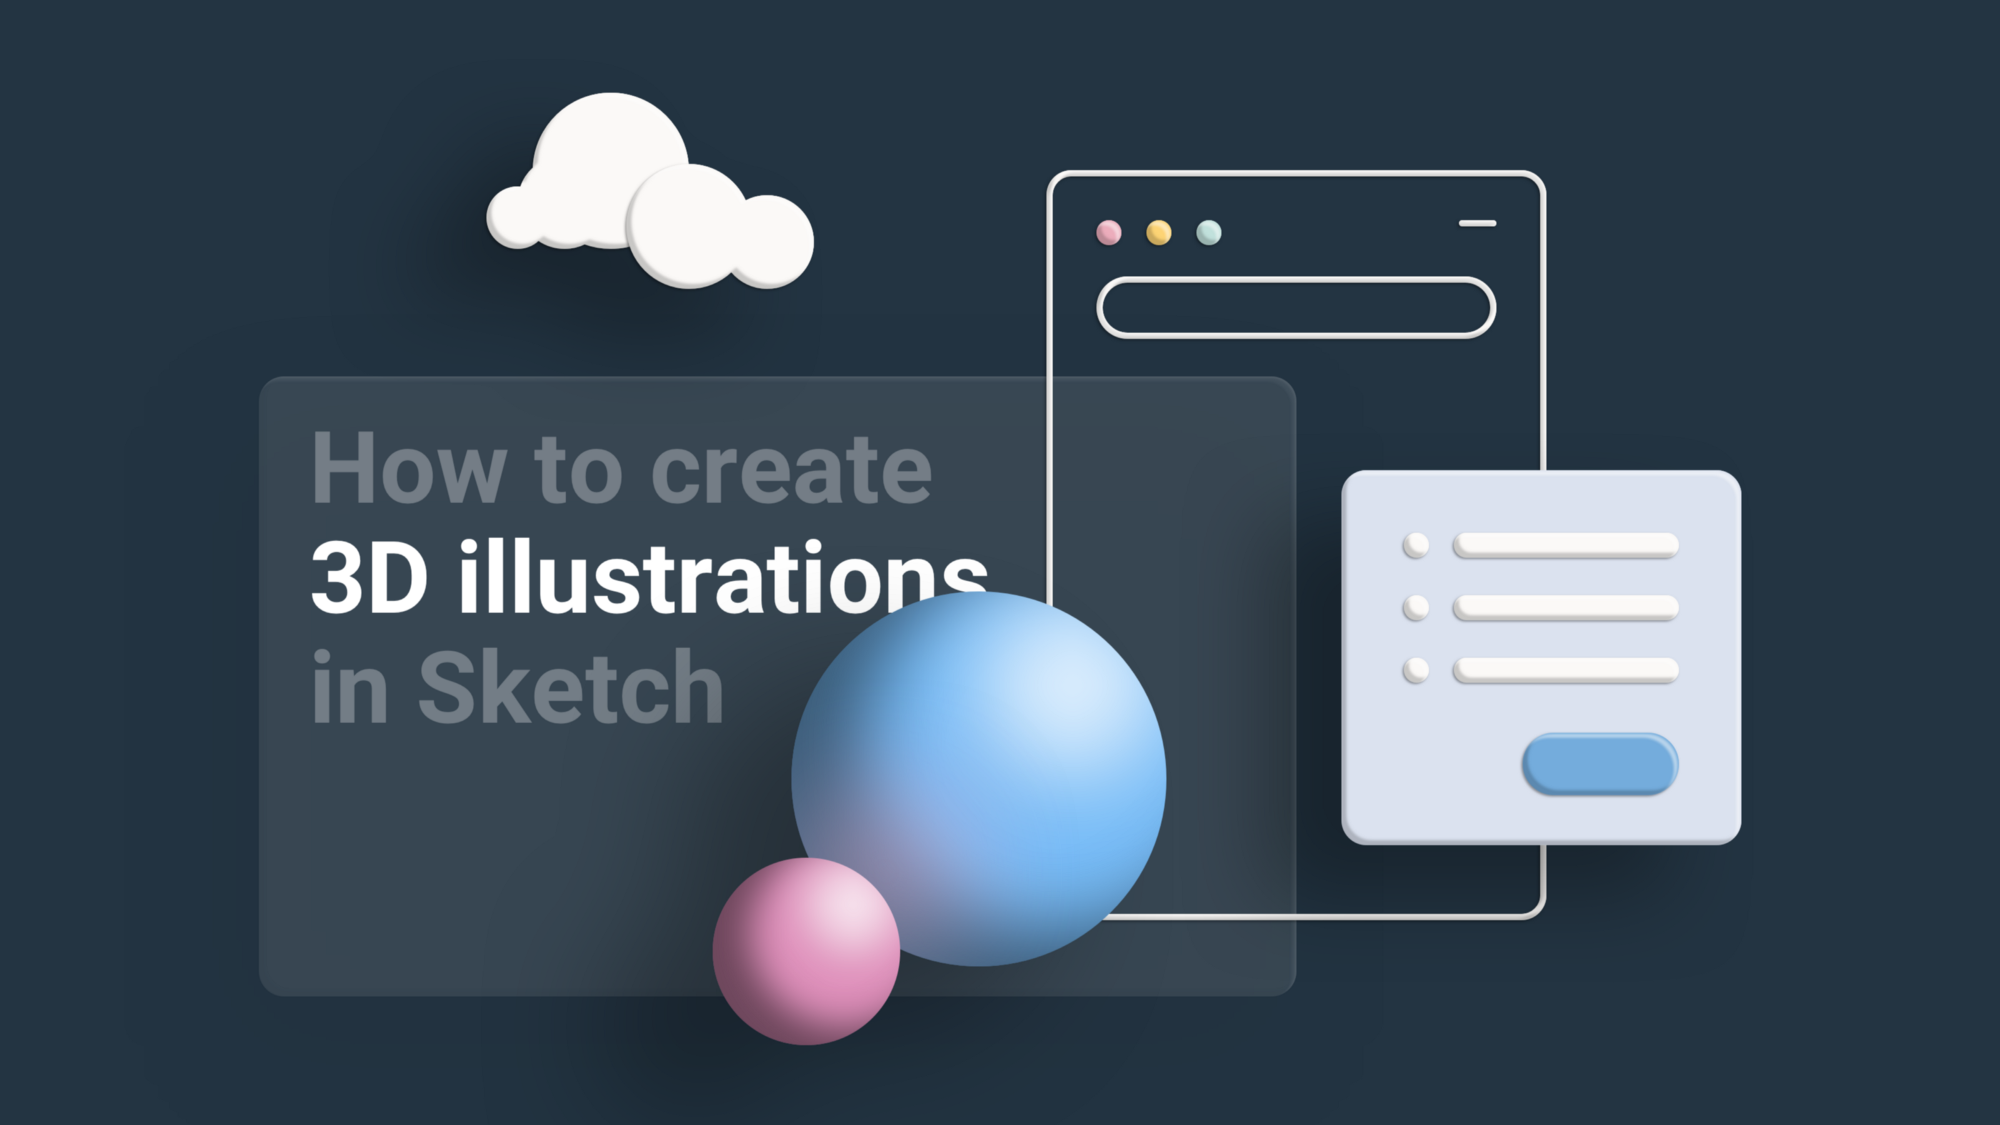 3D illustration of some UI elements, two spheres and a cloud hovering over dark background